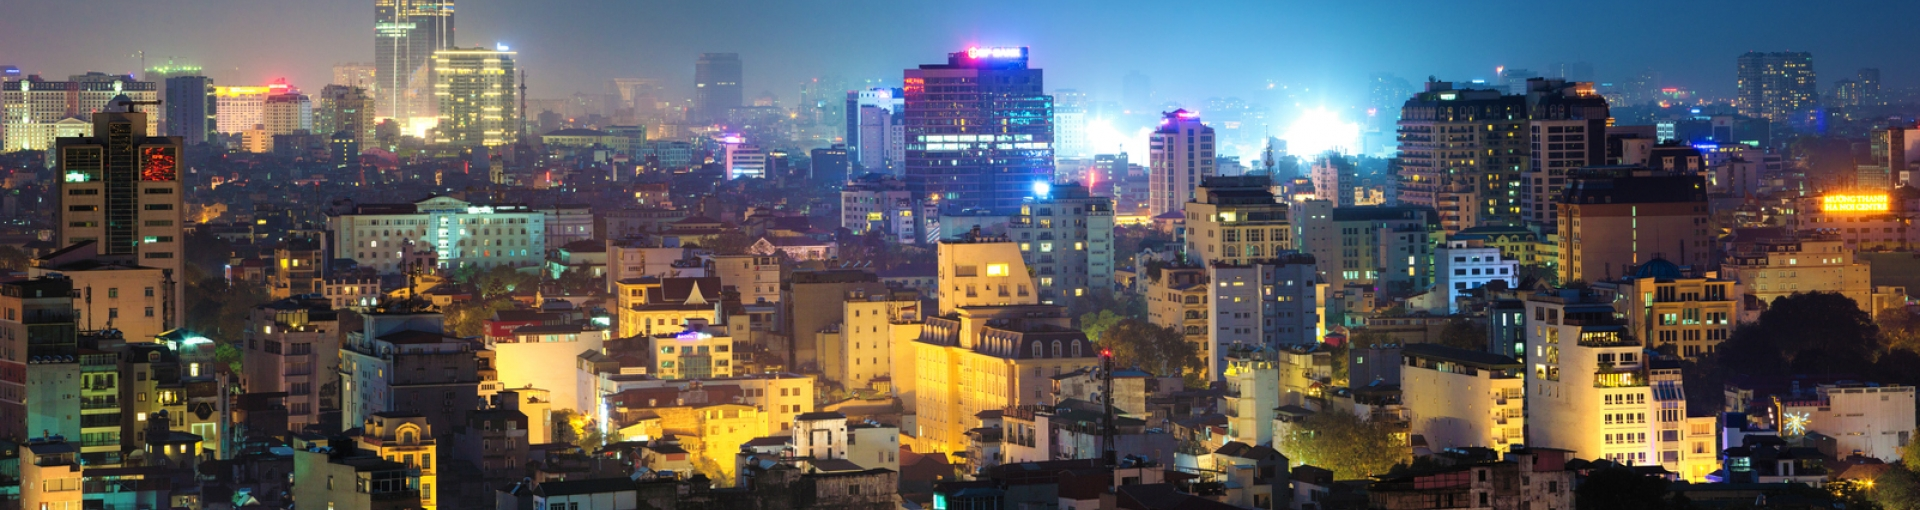 asia uob bank to expand its service in vietnam  rfi group